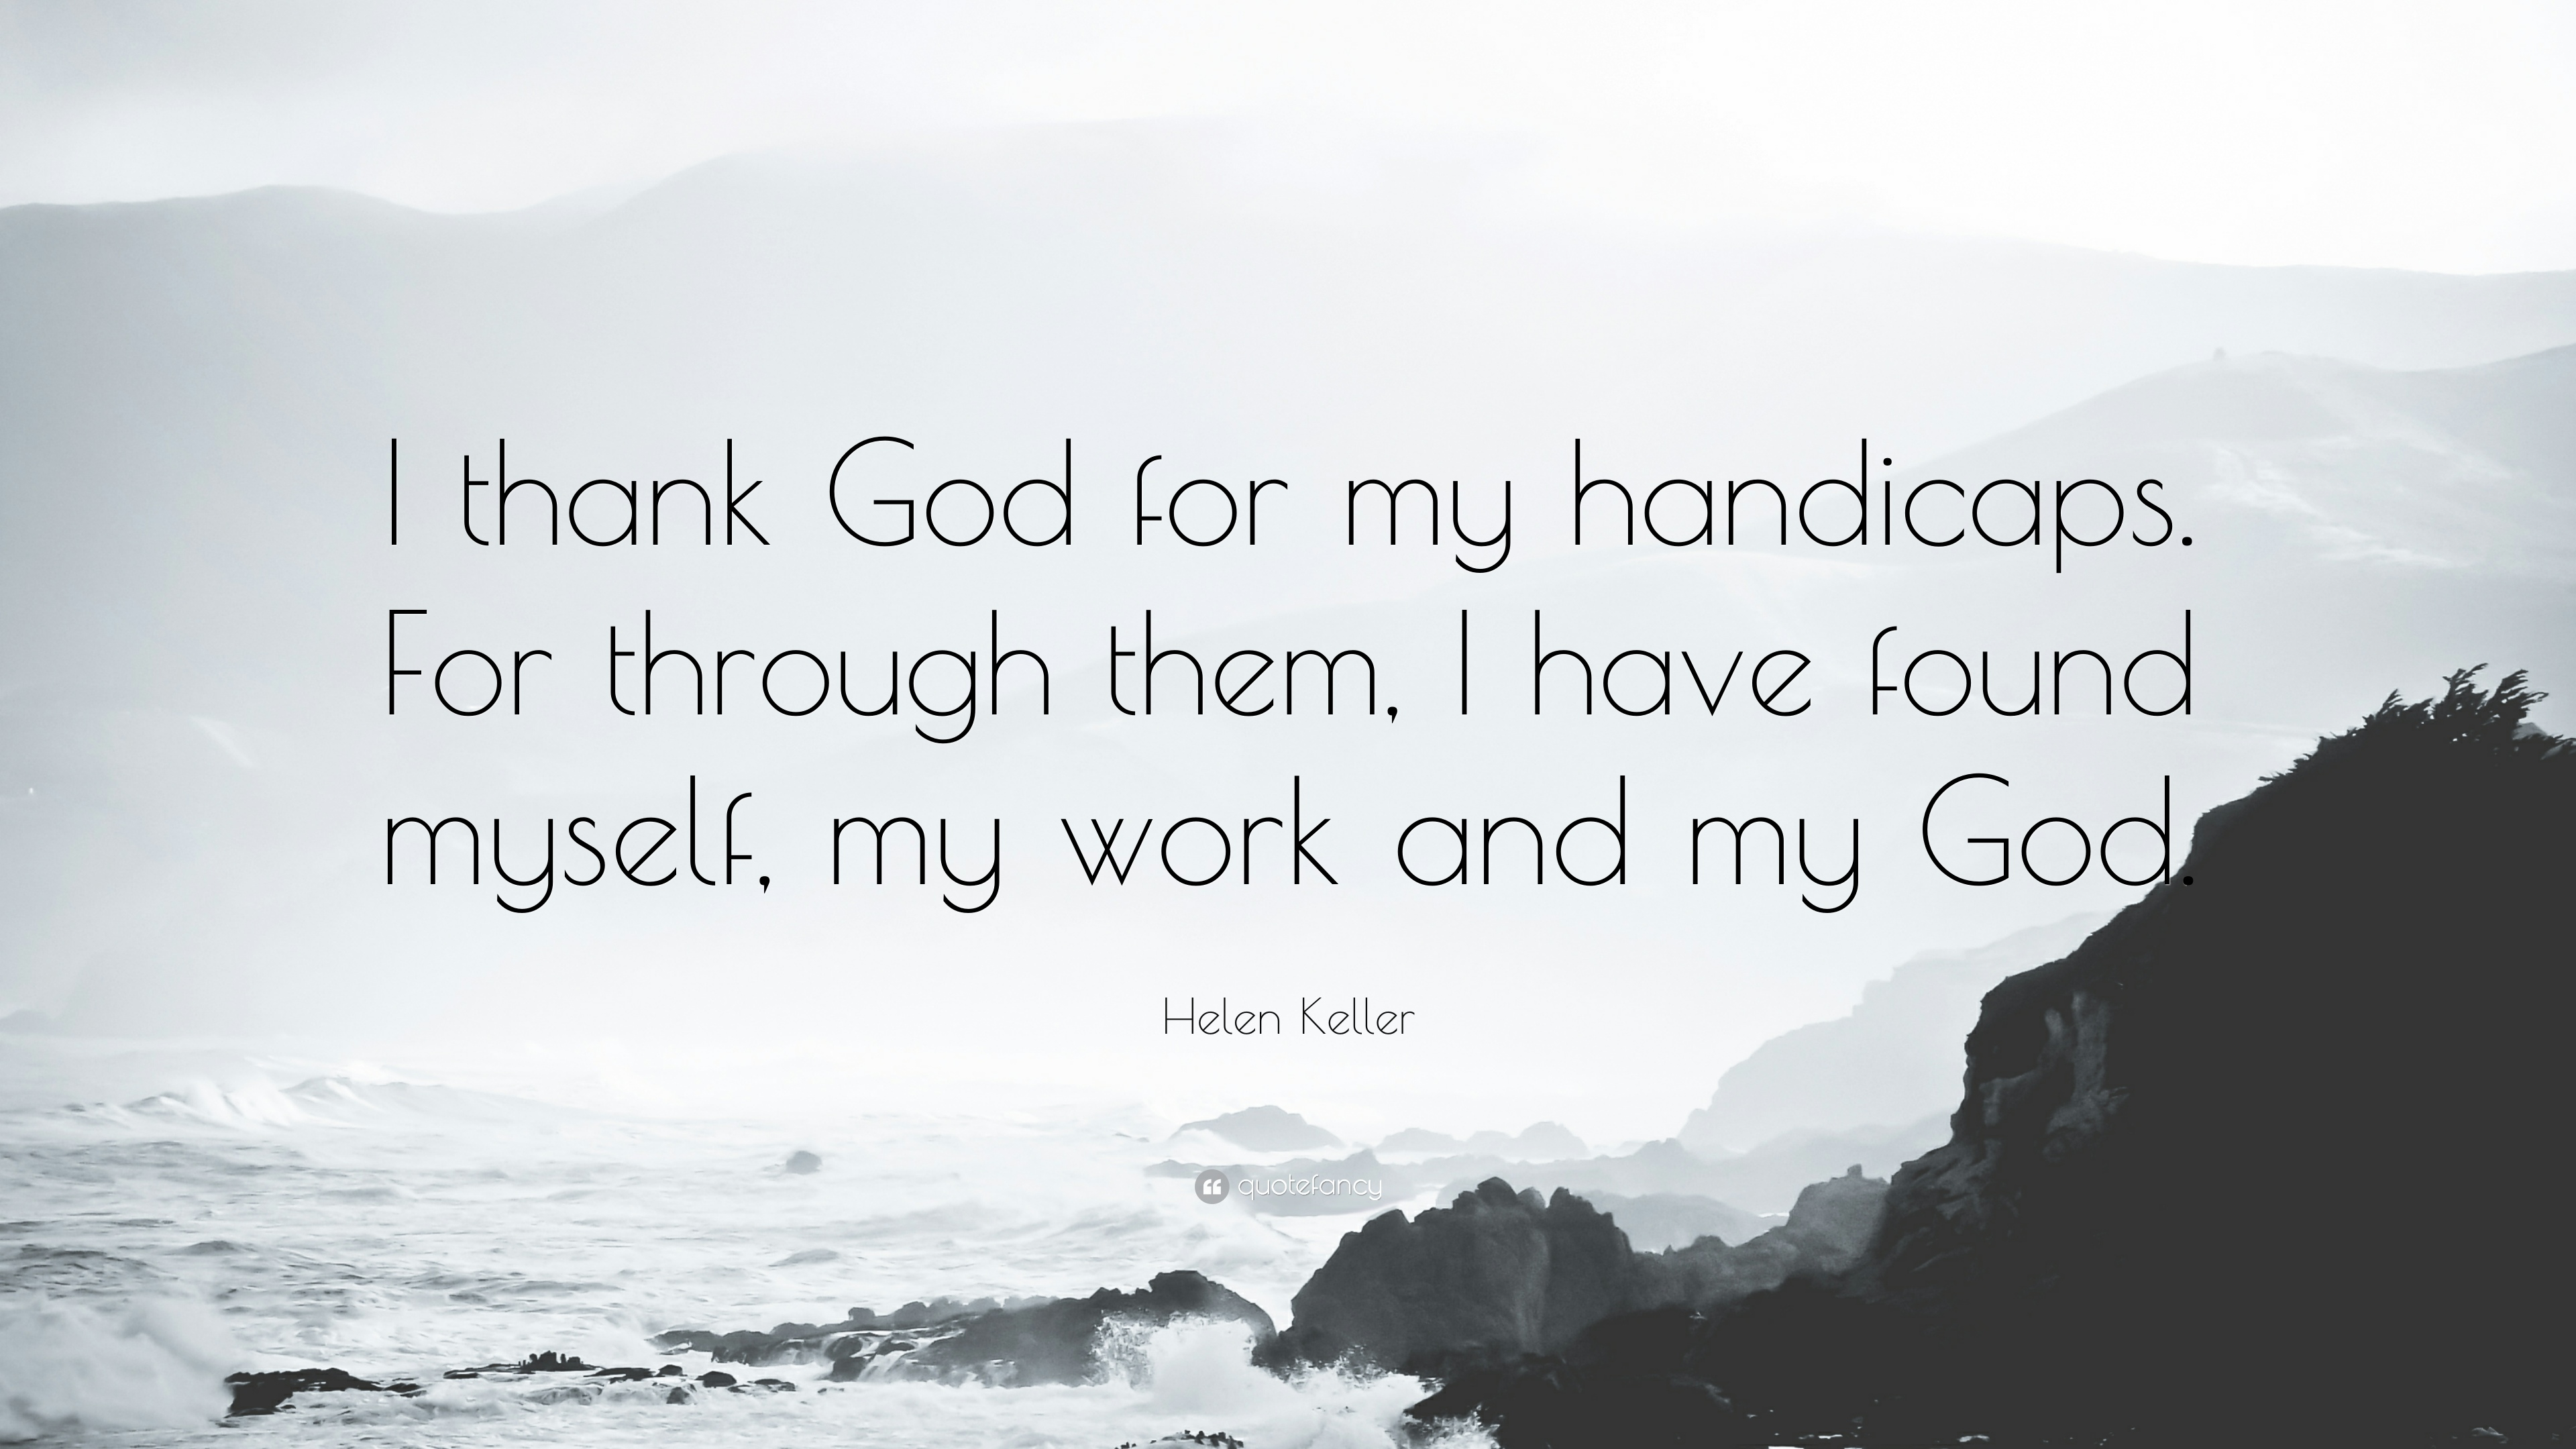 Helen Keller Quote I Thank God For My Handicaps For Through Them I